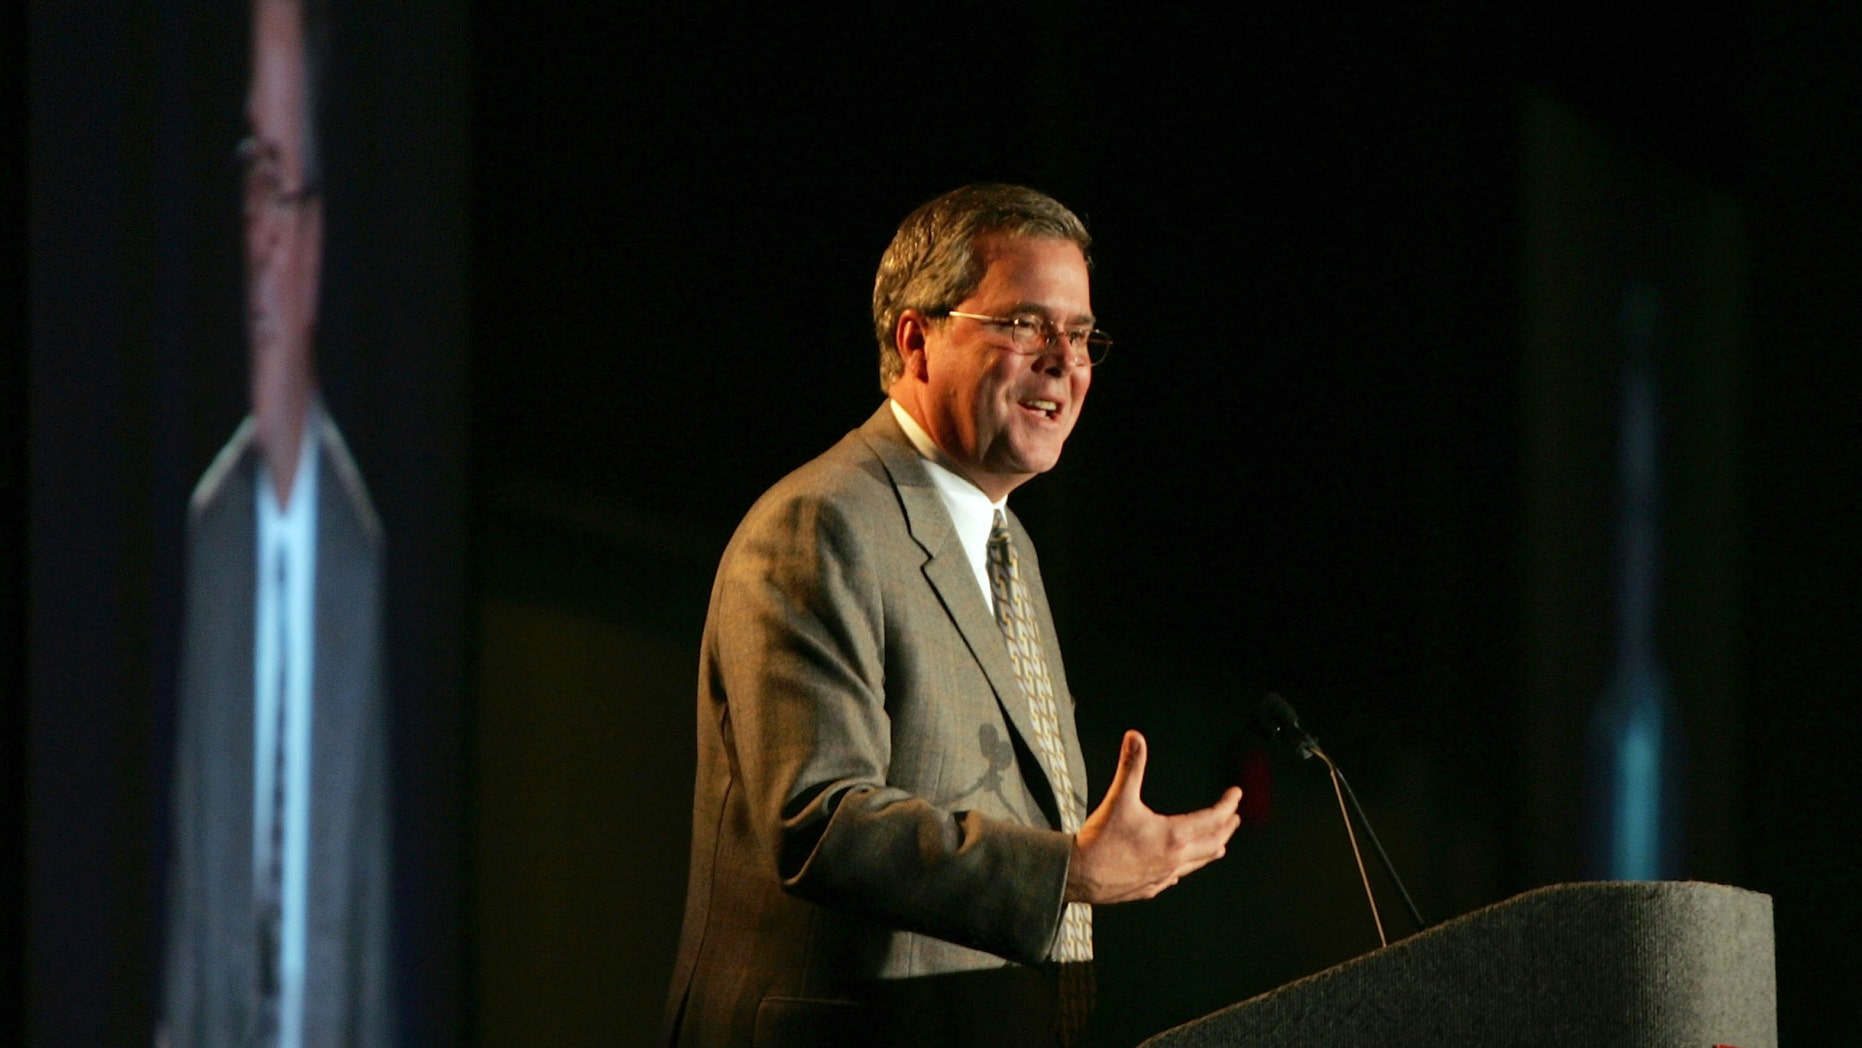 FORT LAUDERDALE, FL - MAY 10:  Jeb Bush, Governor of Florida, speaks during the Governor's Hurricane Conference at the Greater Fort Lauderdale/Broward County Convention Center May 10, 2006 in Fort Lauderdale, Florida. The conference brings together emergency managers, forecasters and relief workers to prepare for the upcoming hurricane season.  (Photo by Joe Raedle/Getty Images)